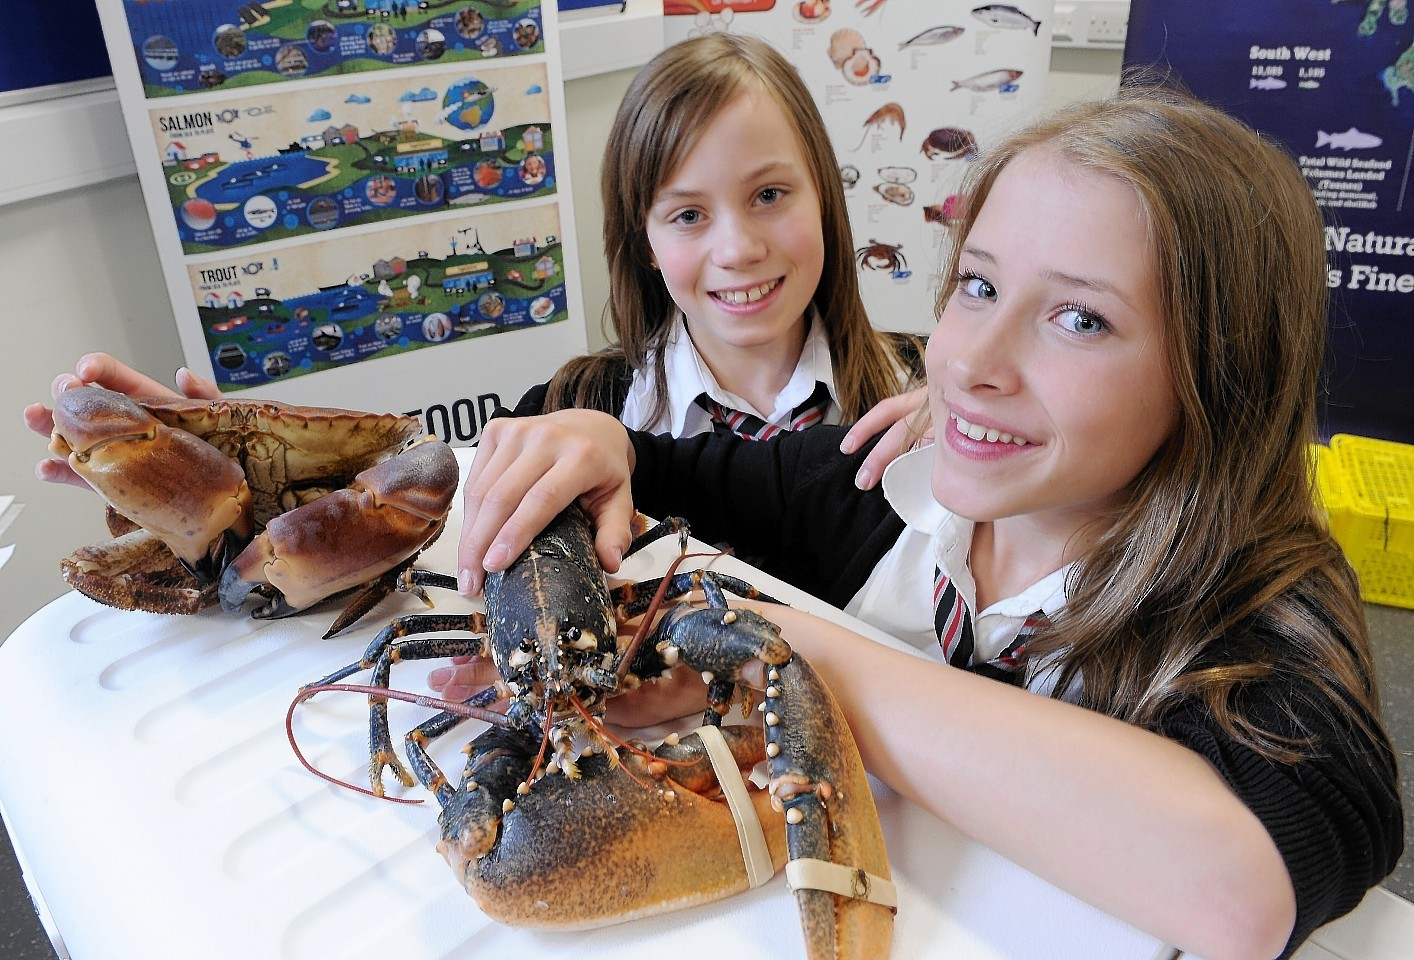 Kingussie High pupils Lottie Converey (left) with a crab and Kamara Tait Davis with a lobster